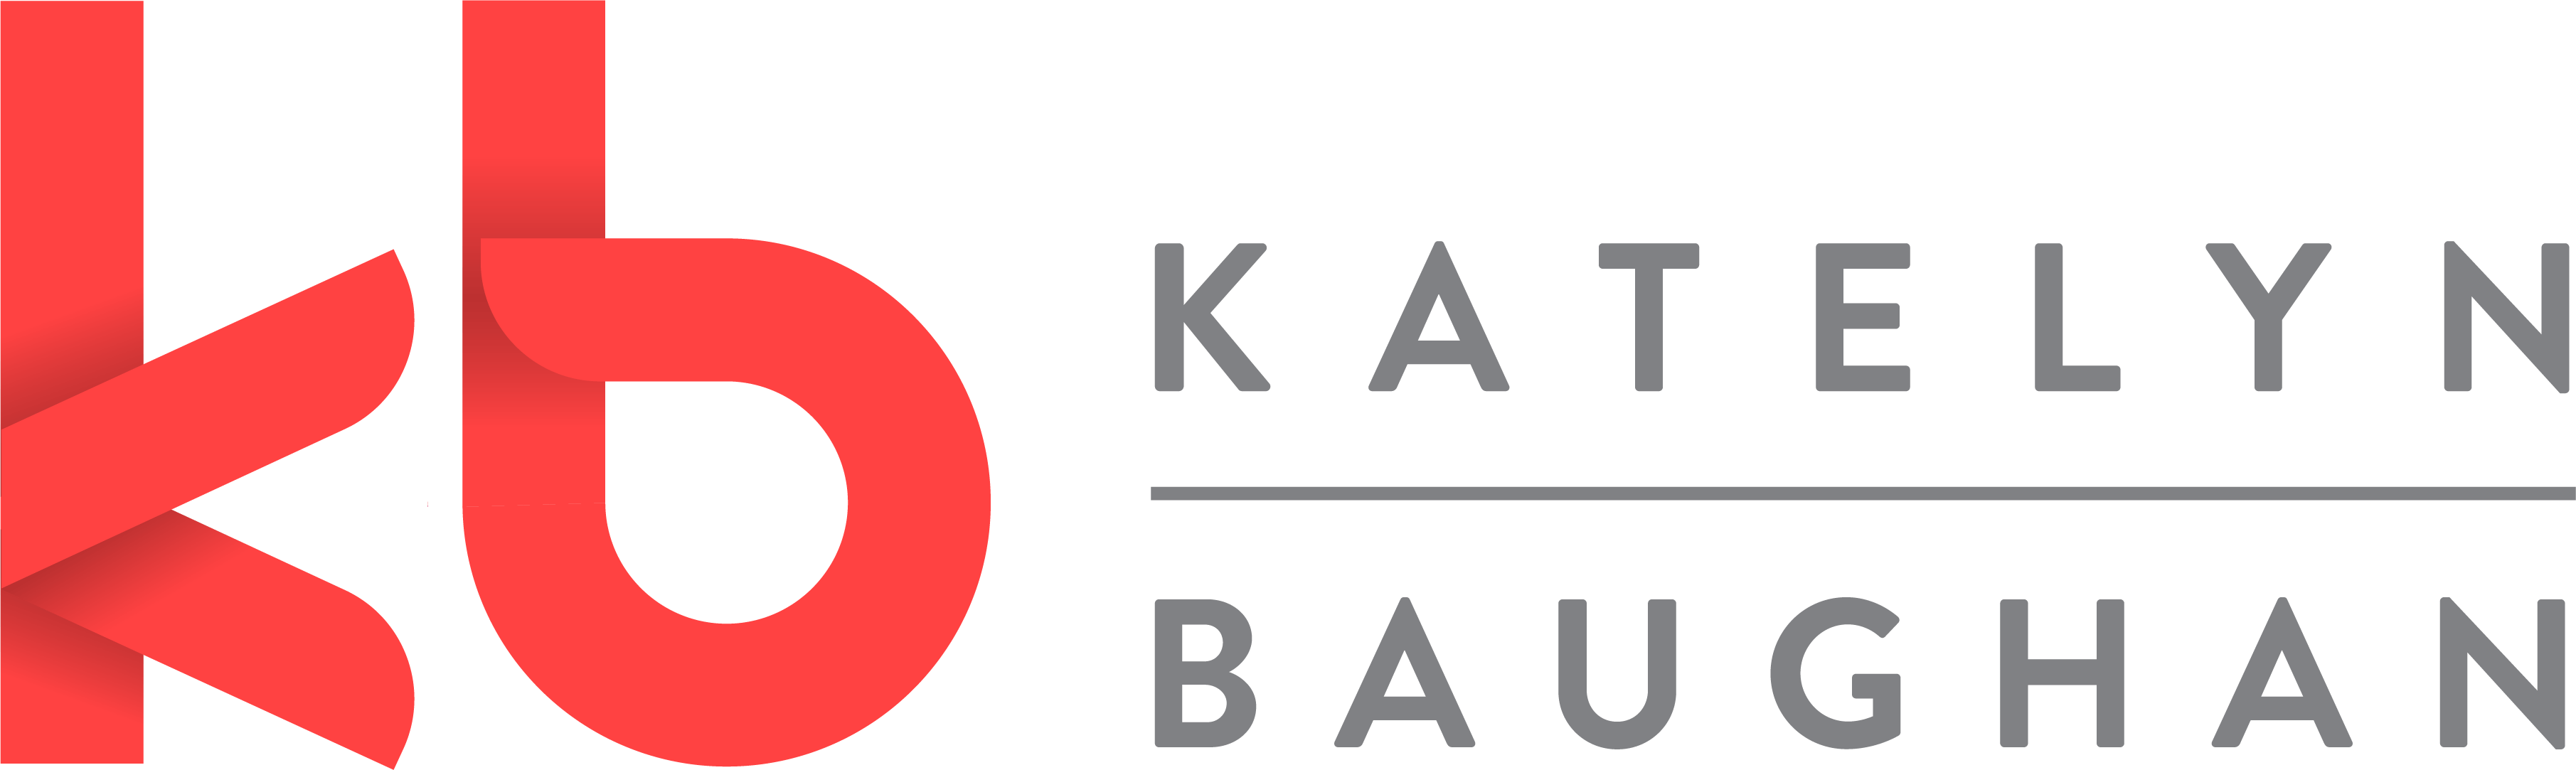 Katelyn Baughan Digital Marketing